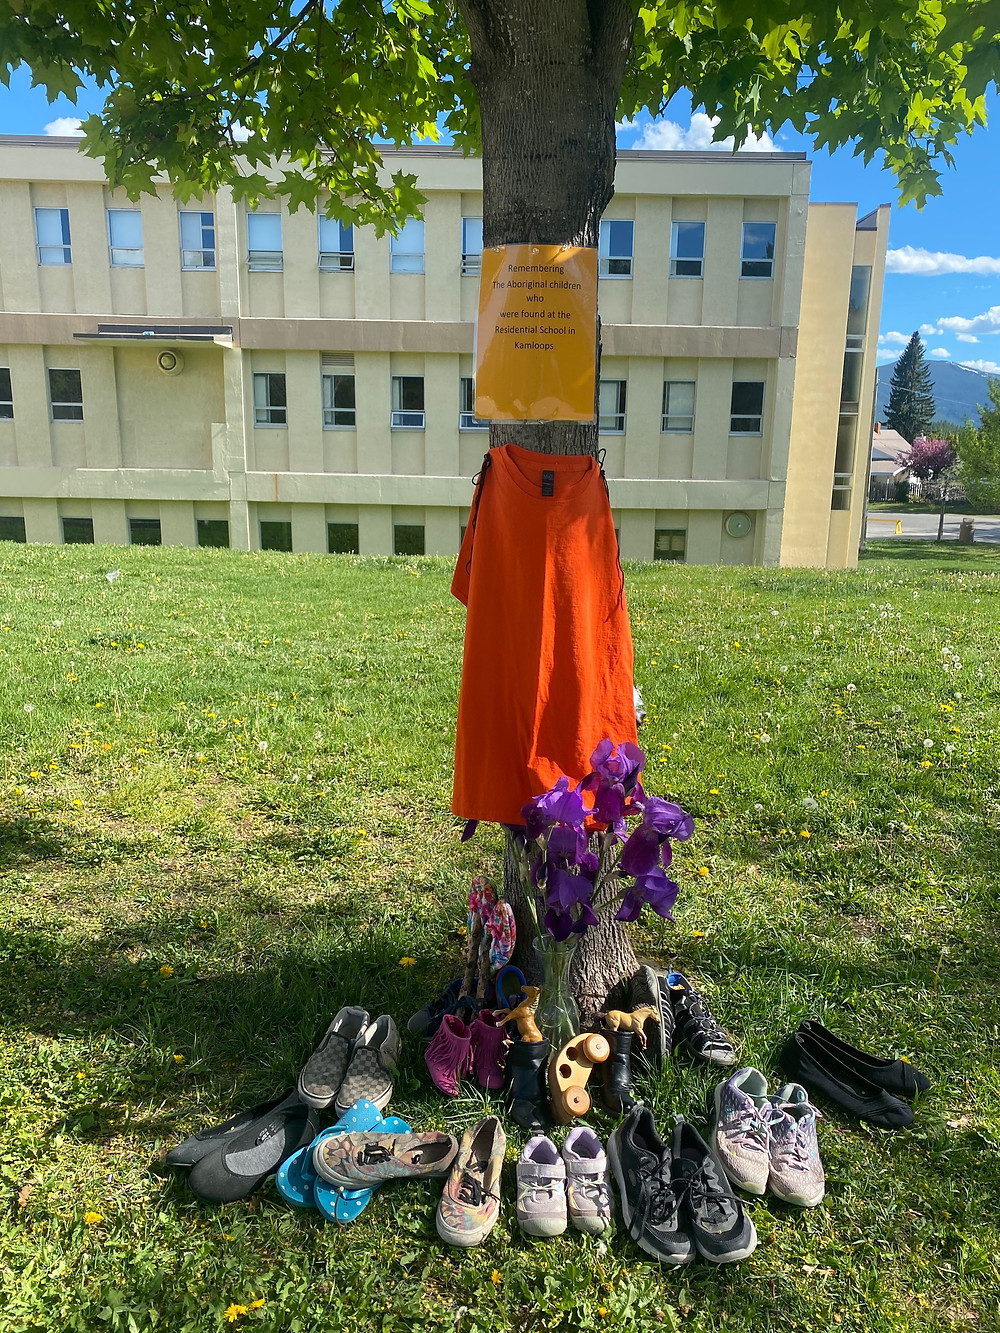 This was taken by a school in Kimberley, BC, but similar memorials are now across the country, yet some suggest this is just old history.